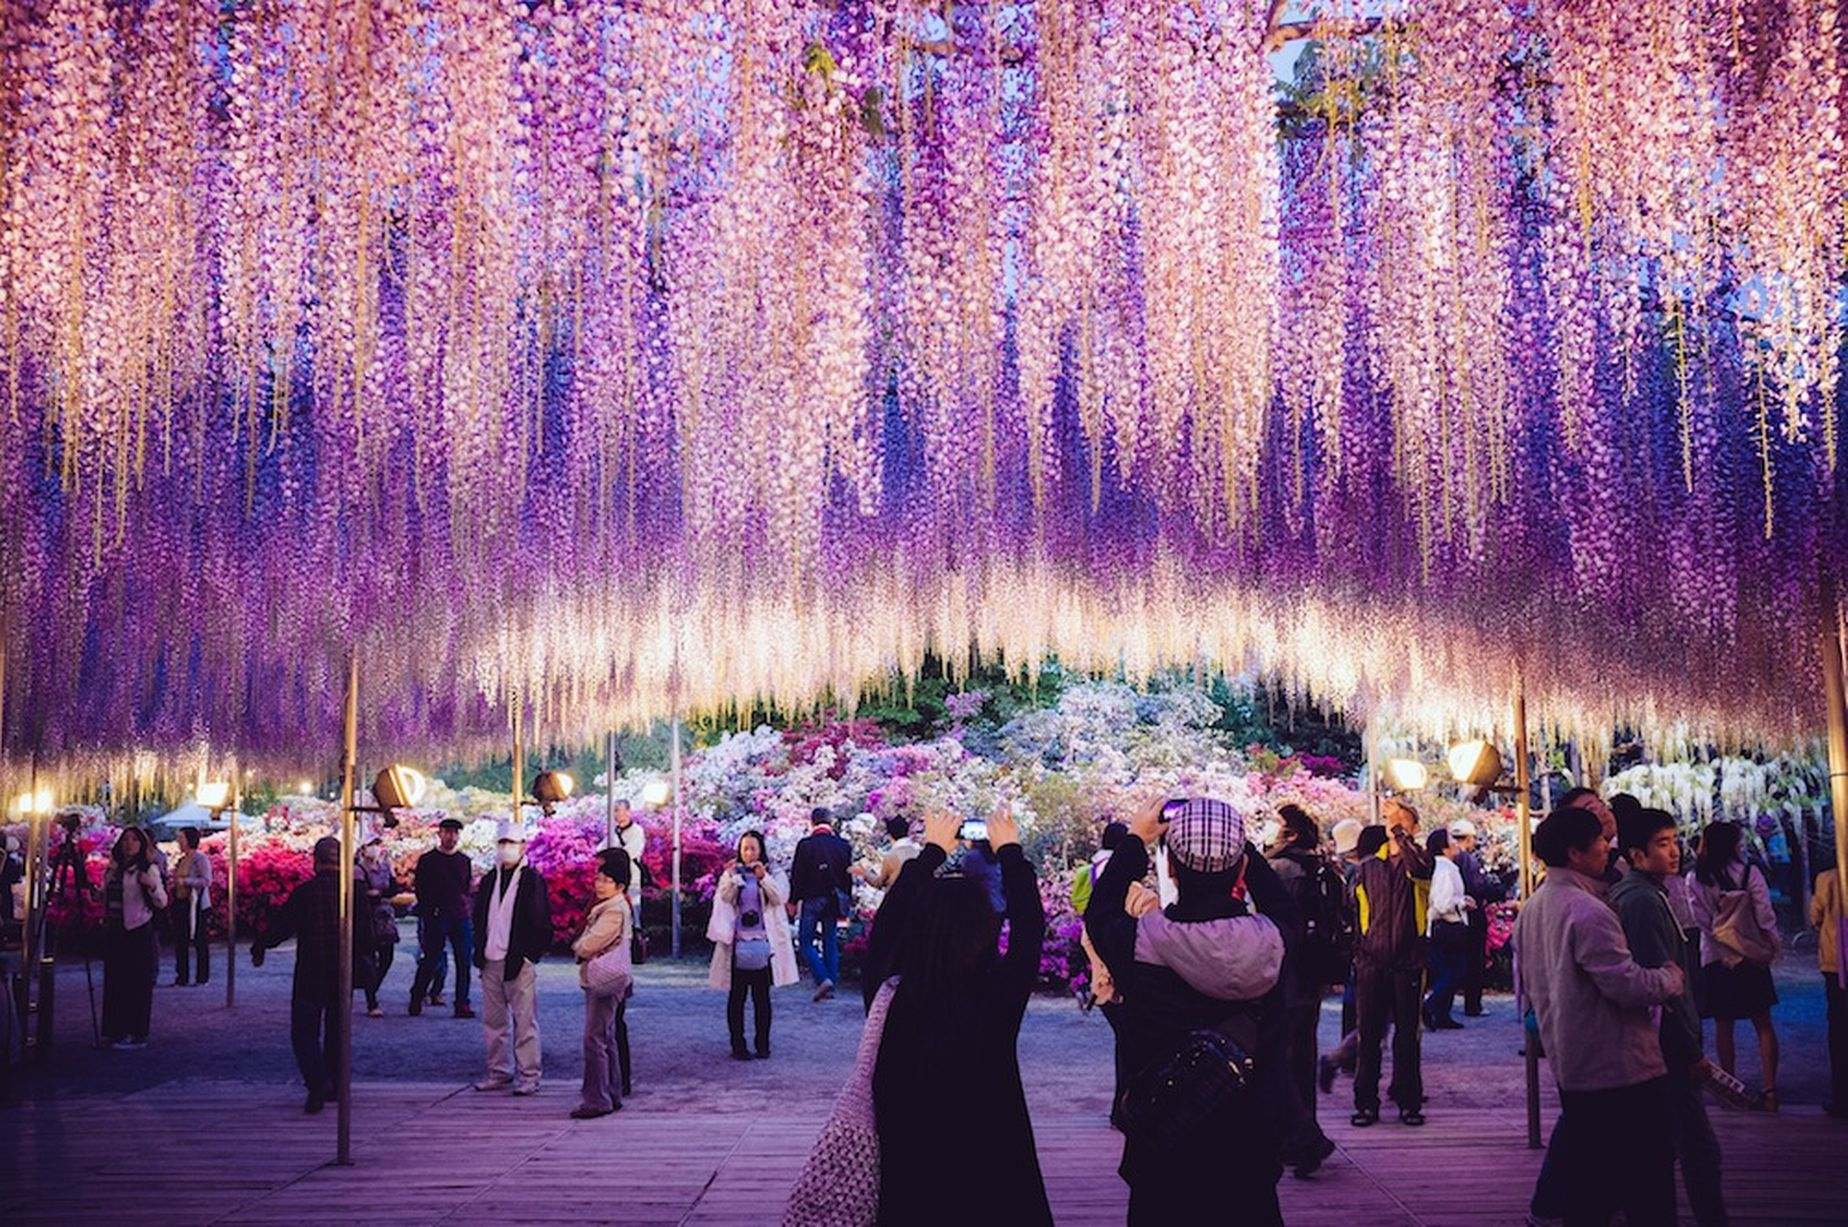 PAY-Ashikaga-Flower-Park (1)